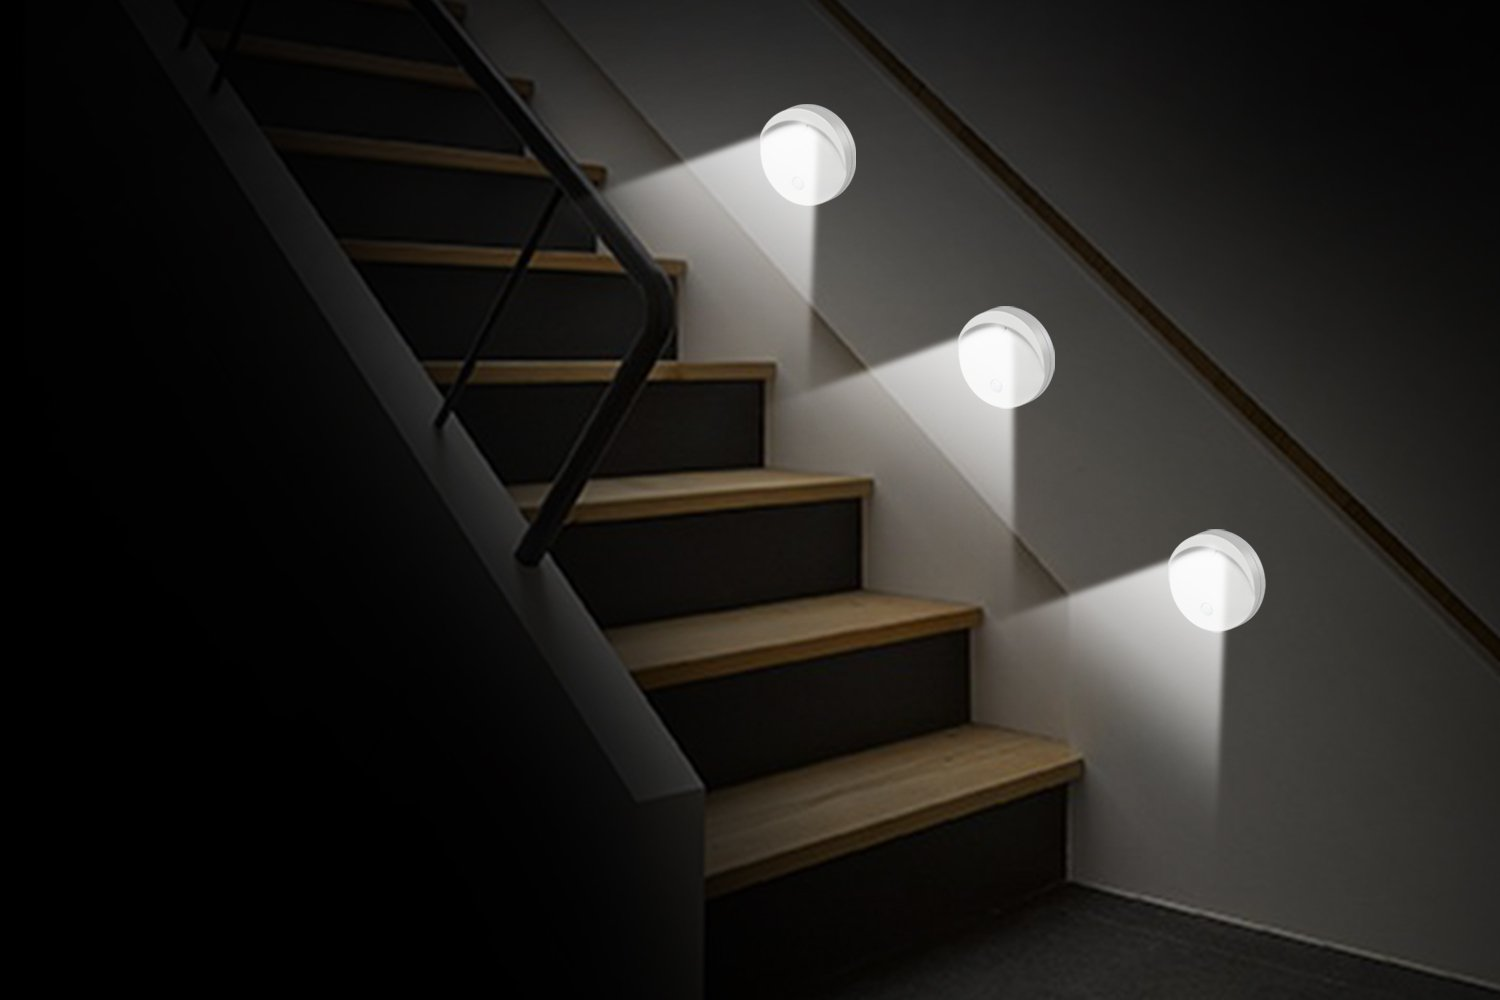 MoKo Circle Shaped Cordless LED Night Light Auto Motion Activated Wall Lights Motion Sensor Light Cabinet Stick-On Lighting lamp for Closet Balcony Apple White Stairs Bathroom Bedroom